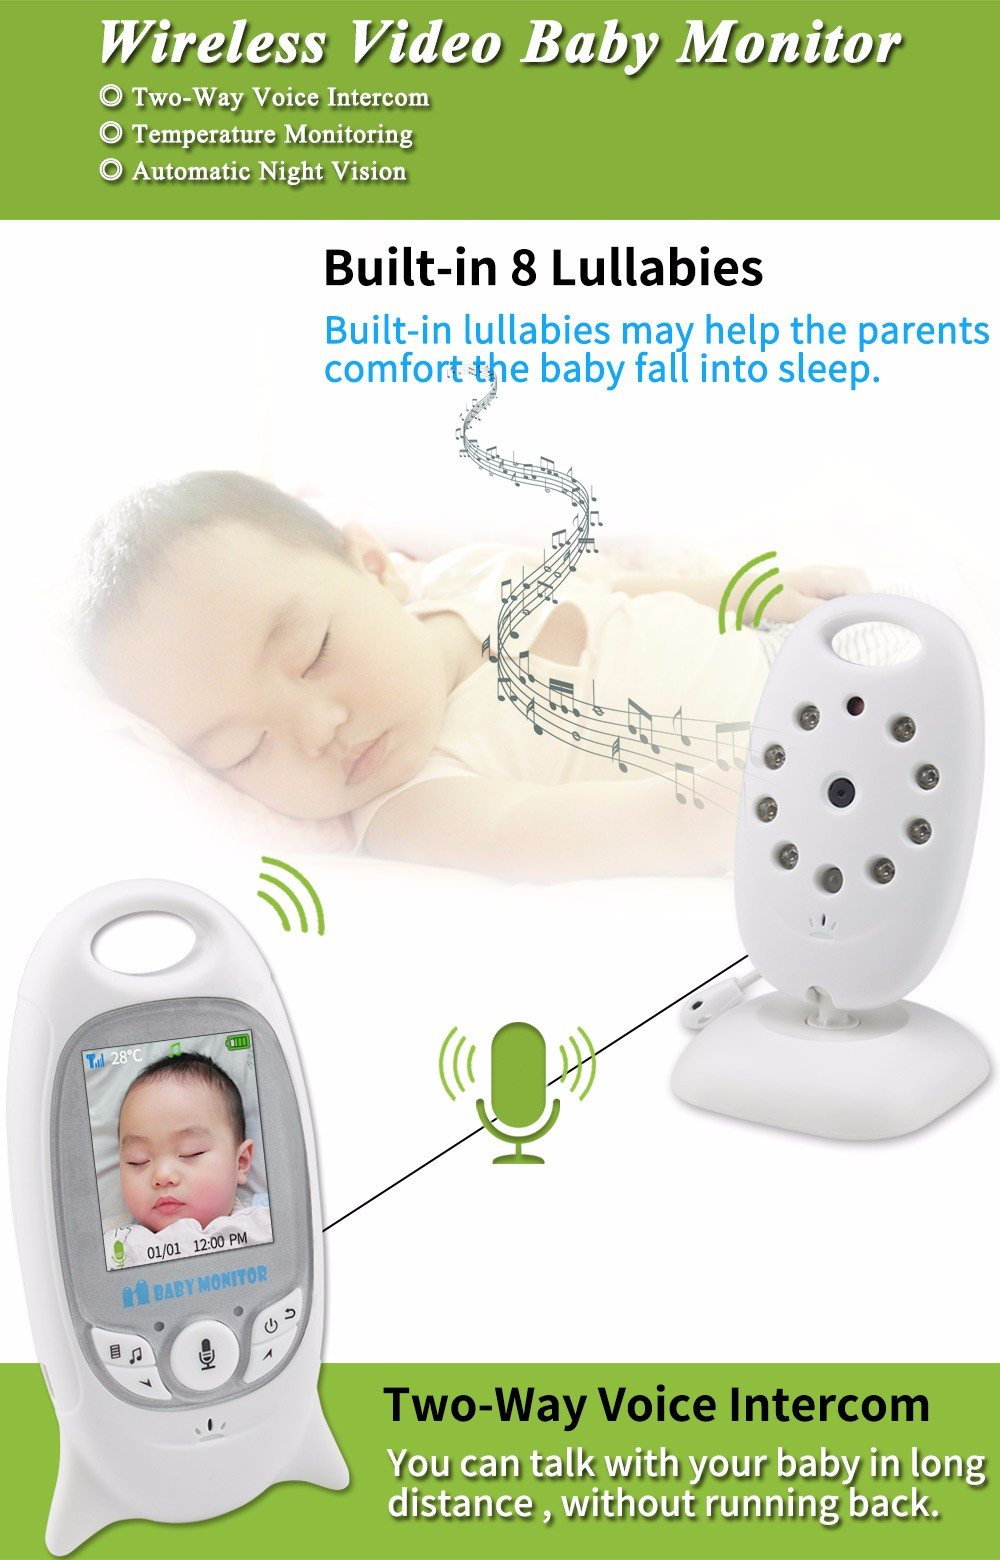 LifetSmart Baby Monitor, 2.4 Inch TFT LCD Screen Wireless Video Security Camera with Two-Way Audio and Night Vision, Temperature Monitoring, Built-in 4 Lullabies for Baby/Old/Pet (SP601) LifetSmart 2.0in high-contrast screen, with LCD backlight.8 high-intensity infrared LEDs for good night vision. Automatical pairing, plug and play, very convenient.Longer effective distance connection, 160ft indoor and 850ft outdoor. Two way audio monitoring, you can talk to your baby whenever and wherever you are.Built-in 8 lullabies to help baby to sleep soon. 5